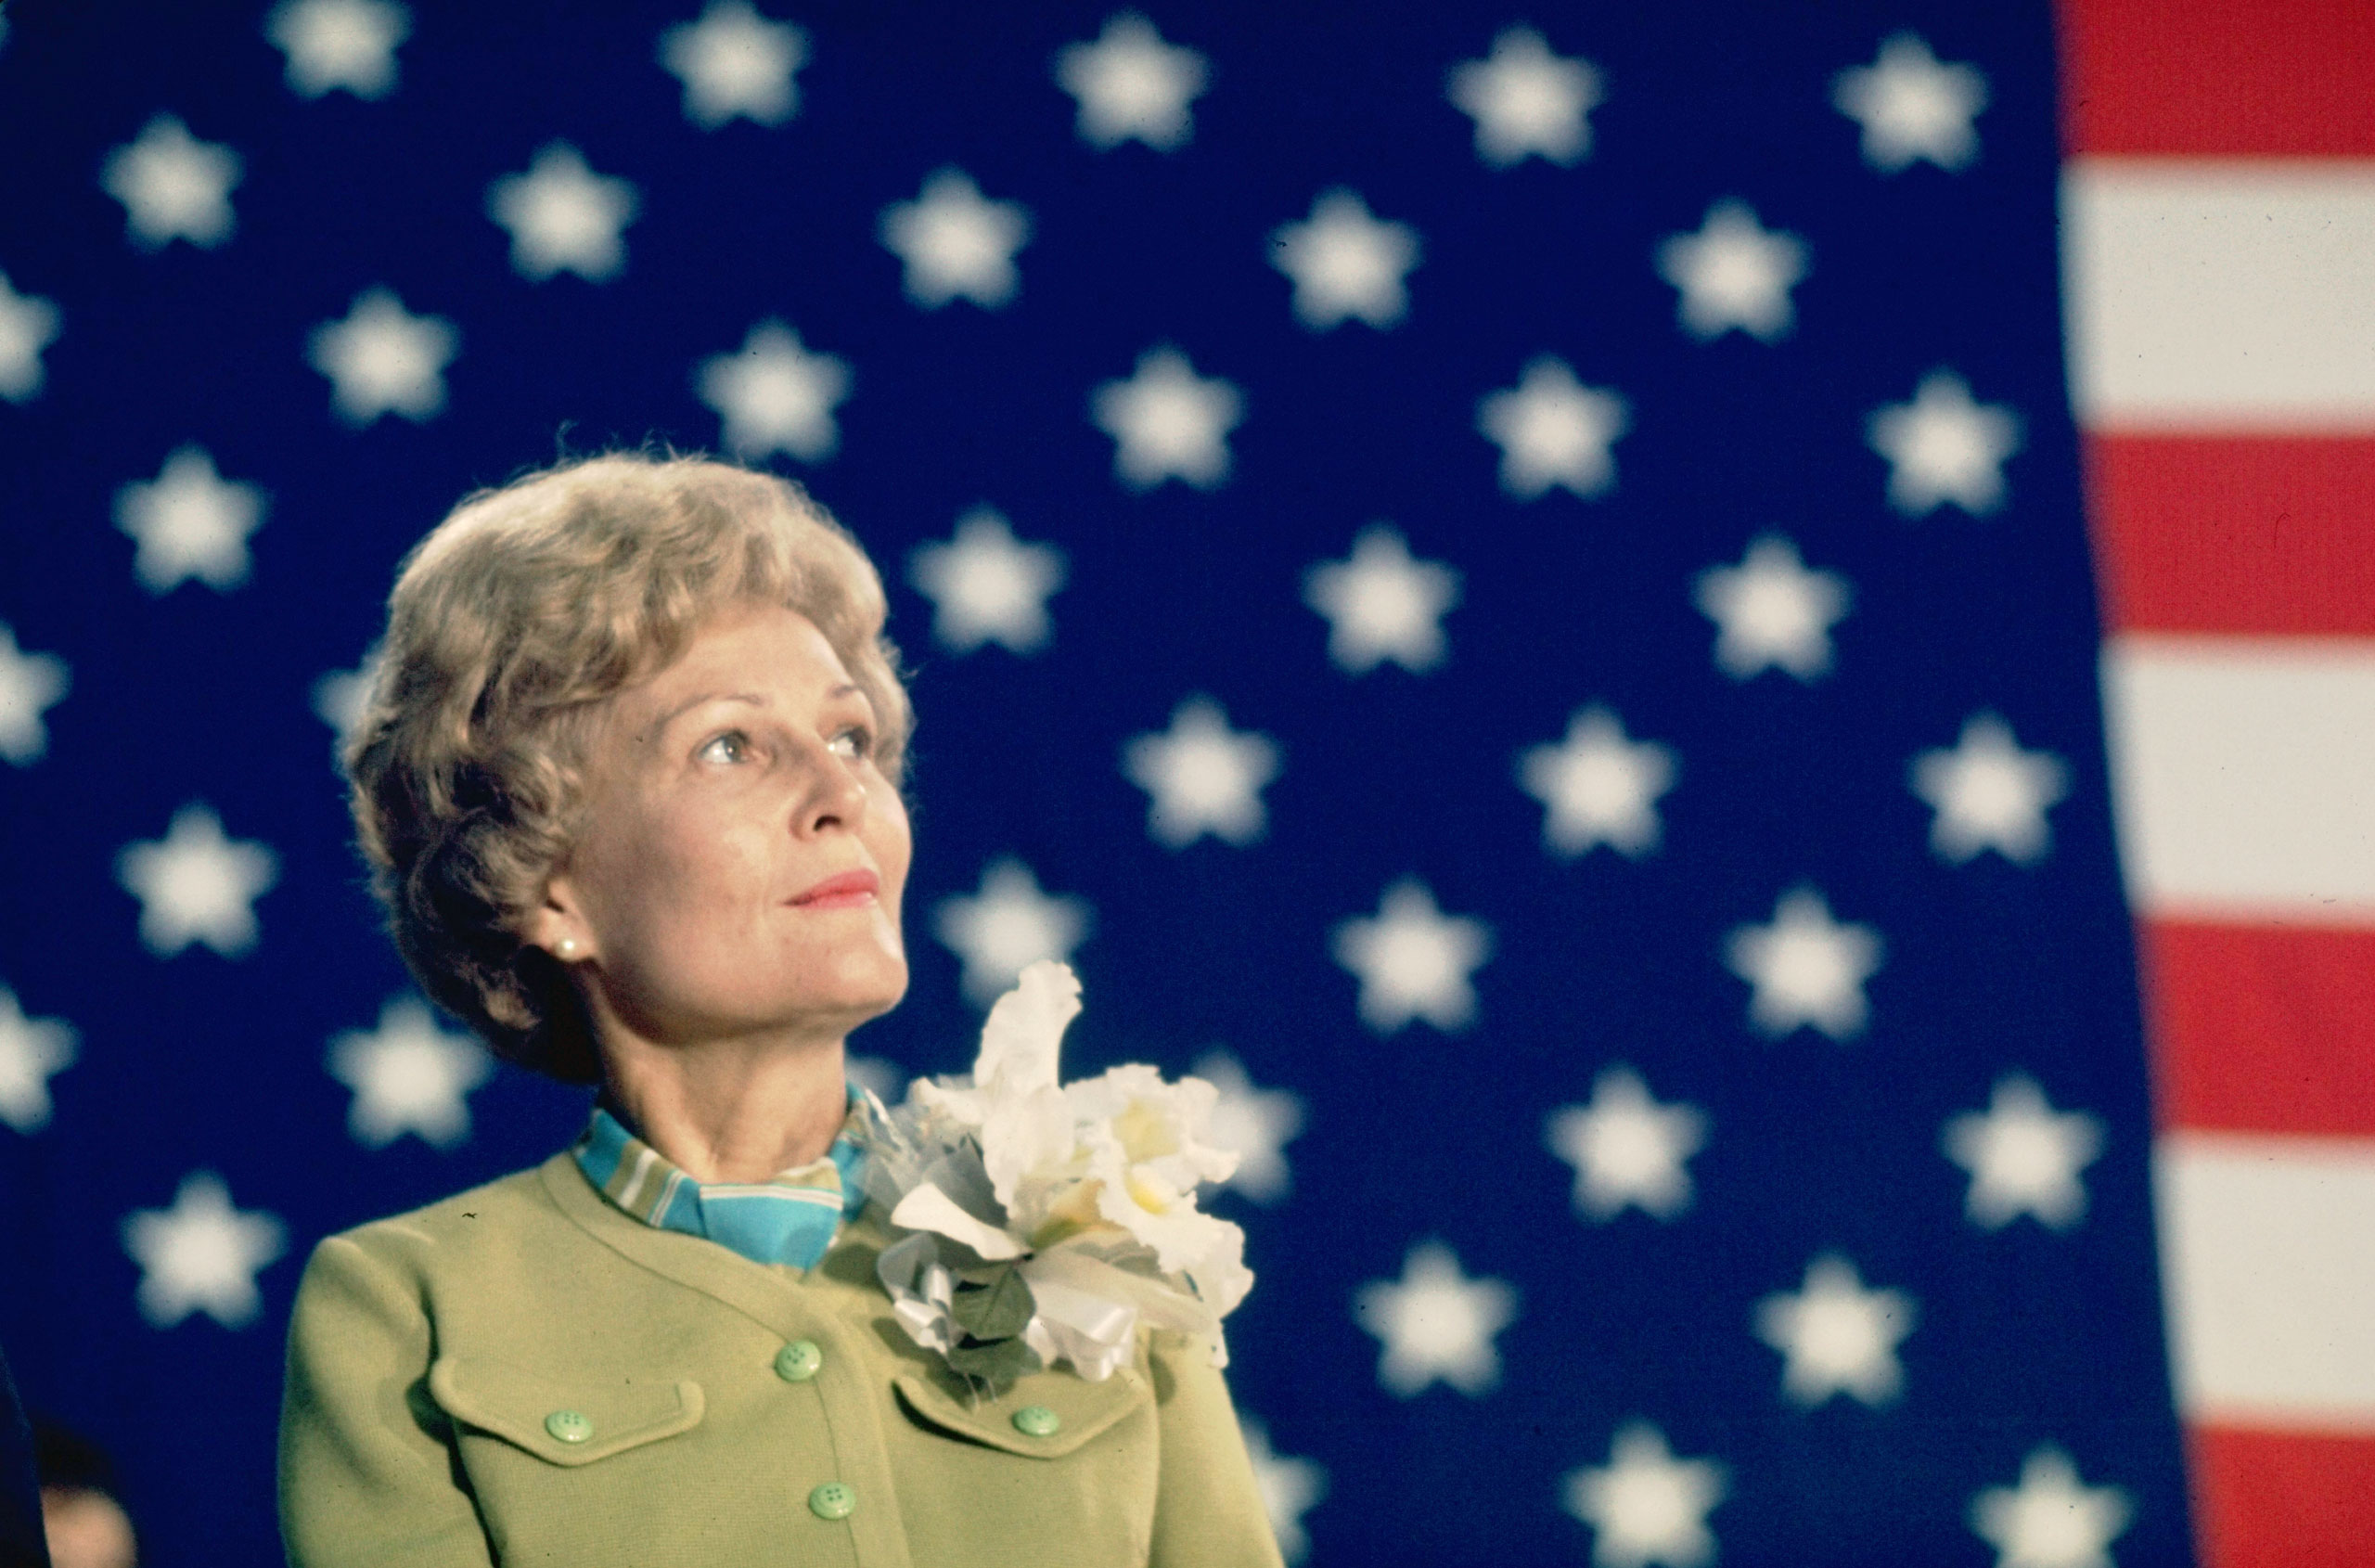 Pat Nixon, wife of presidential candidate Richard Nixon, on the campaign trail, 1968.